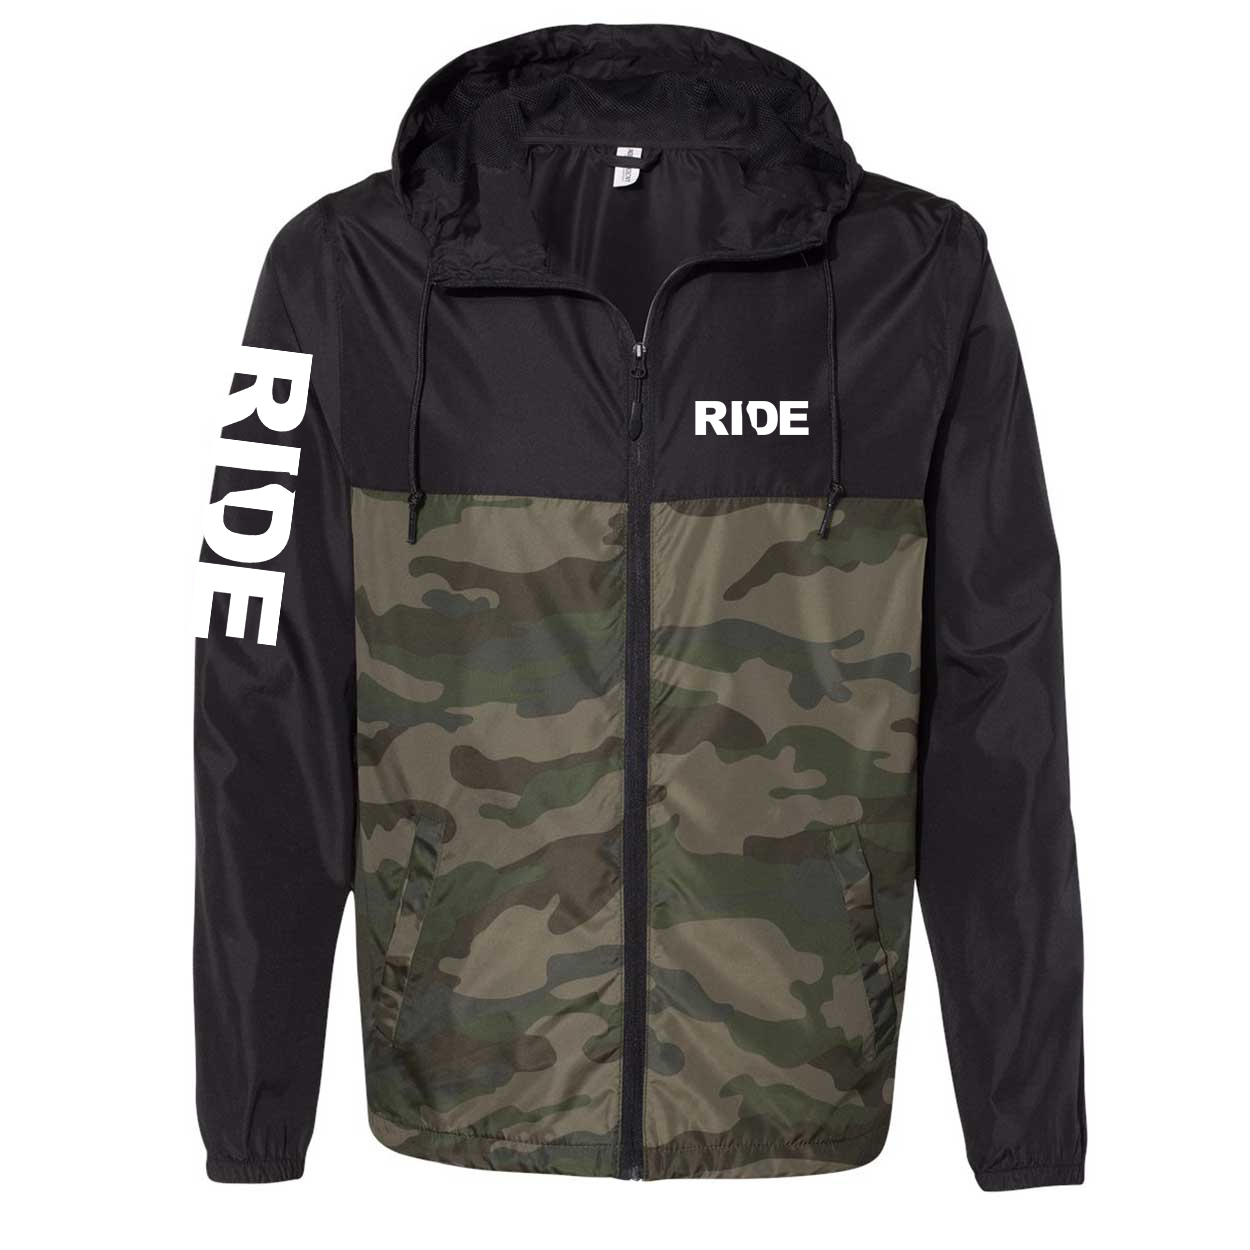 Ride Delaware Classic Lightweight Windbreaker Black/Forest Camo (White Logo)